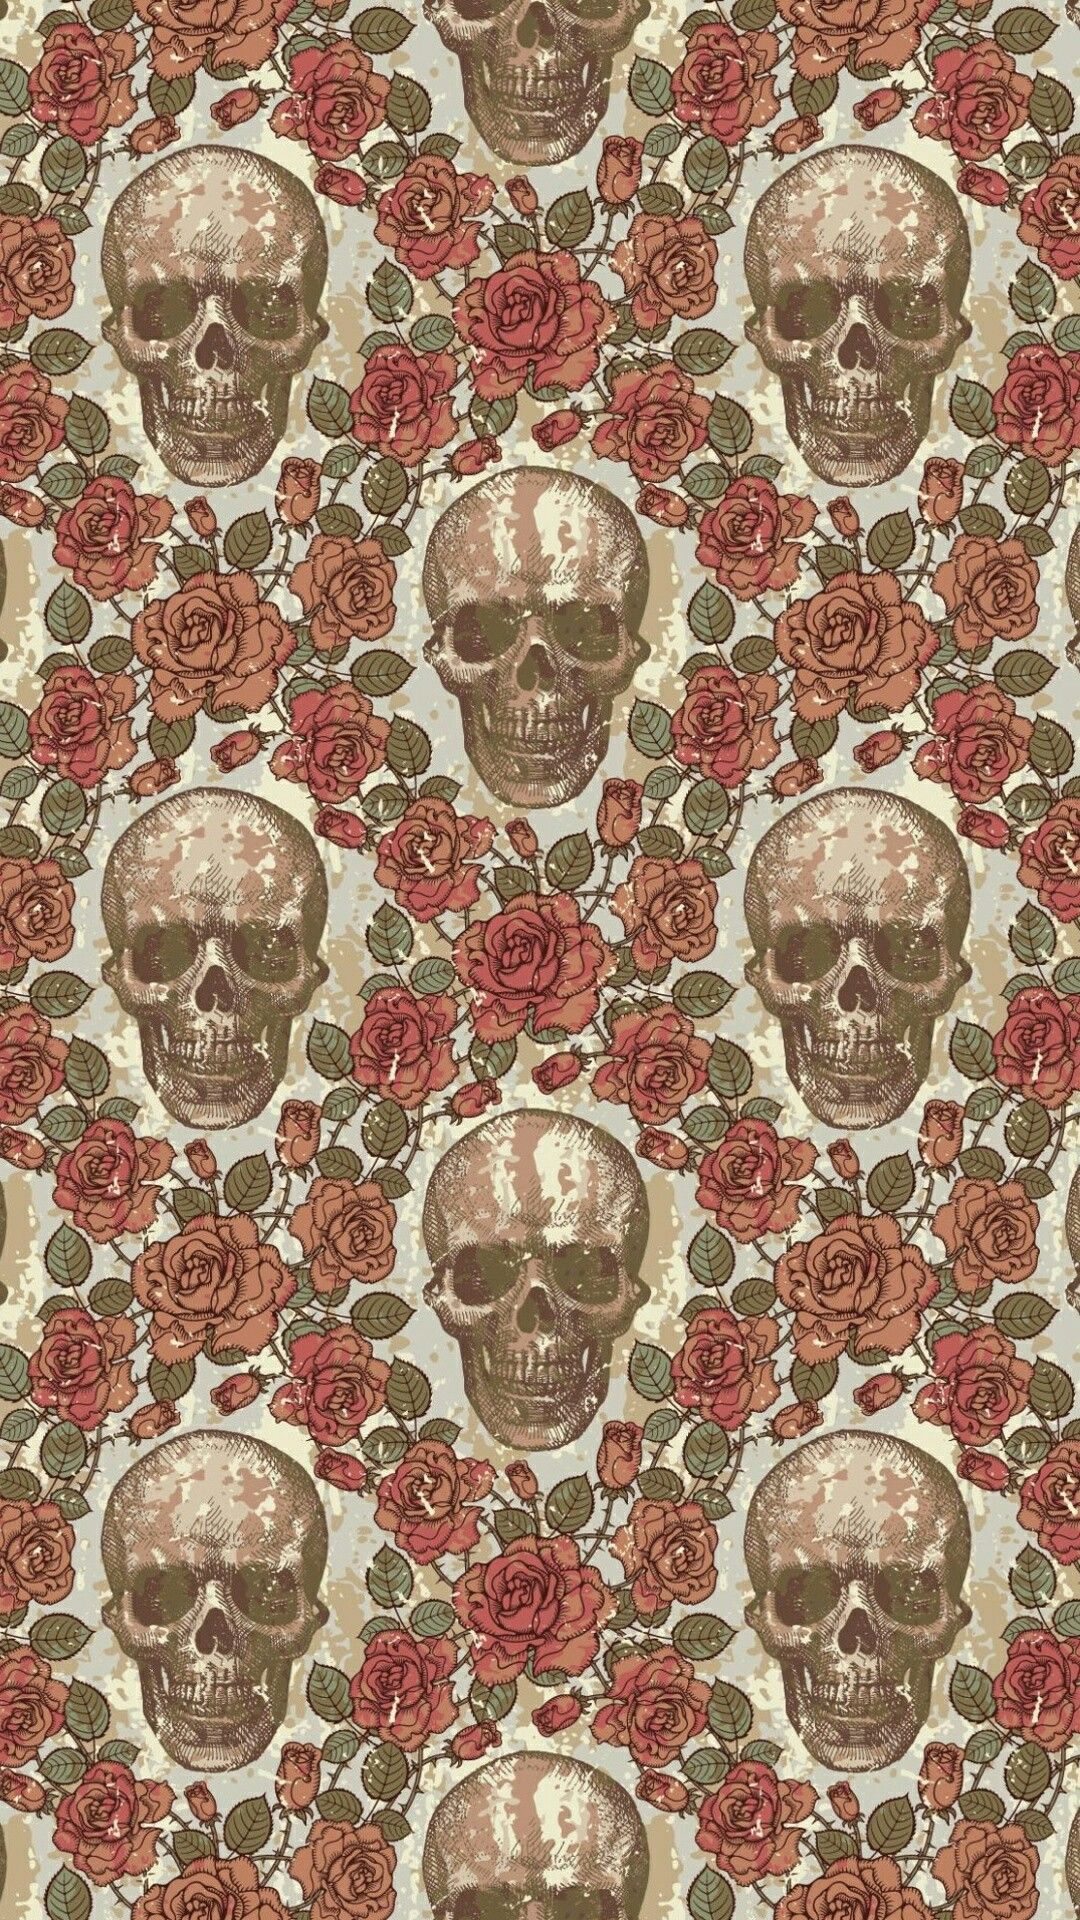 skull wallpaper. would make for an awesome accent wall in a small